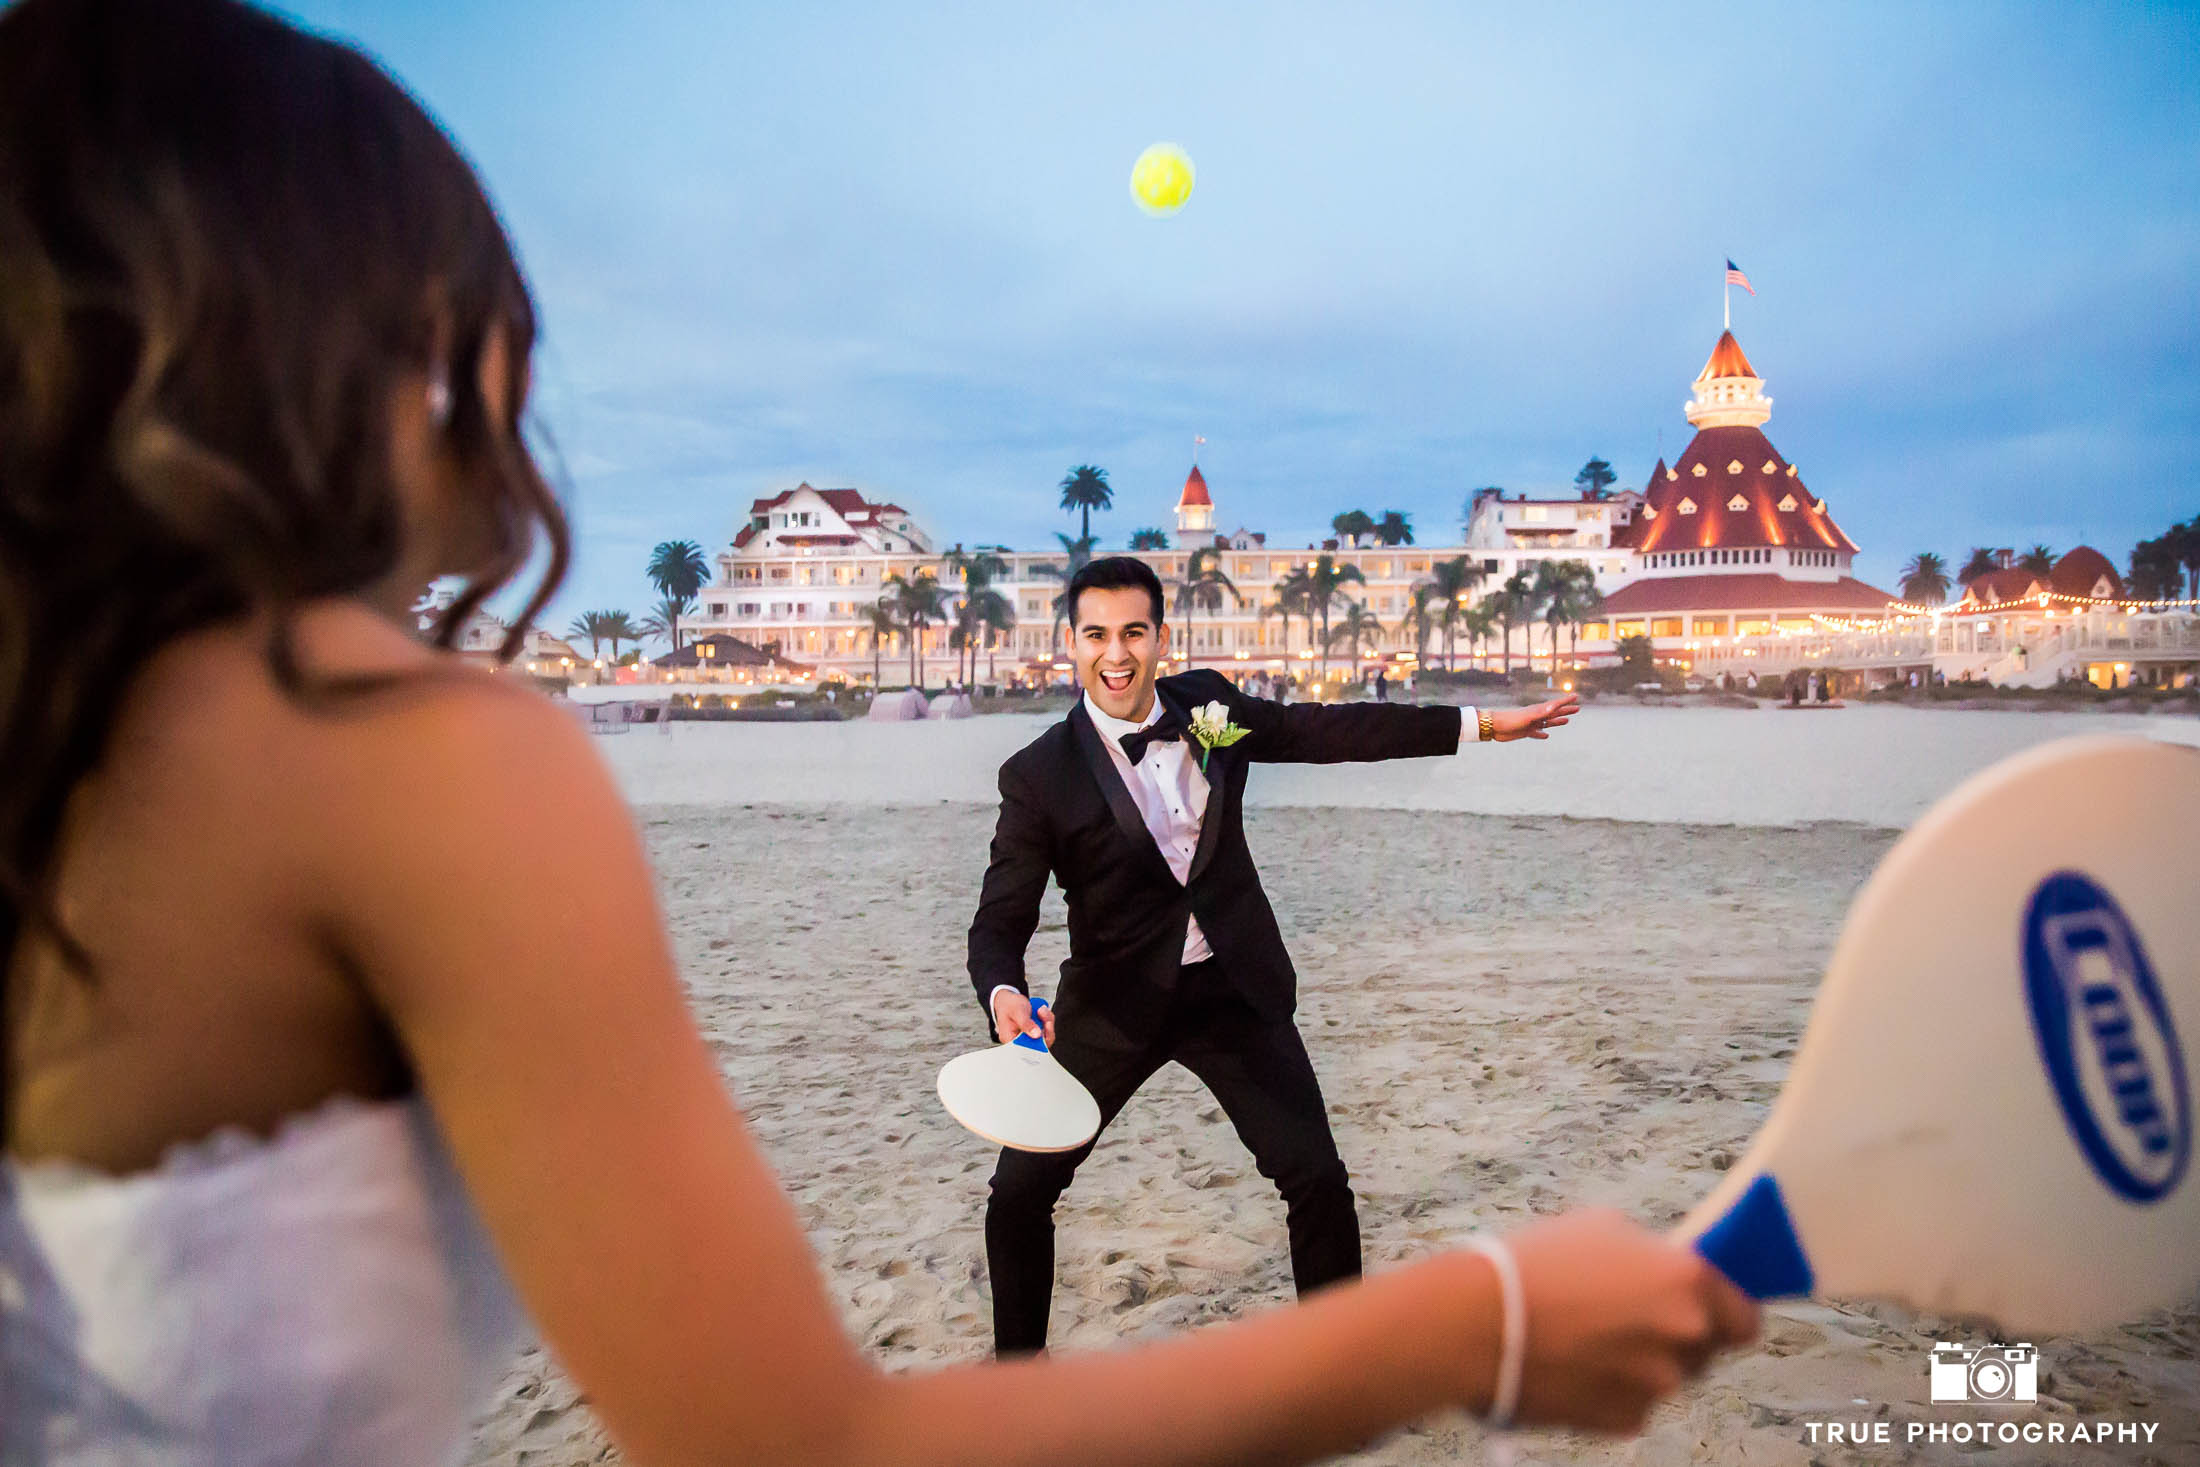 Groom's fun reaction to playing with Bride at Hotel Del Coronado